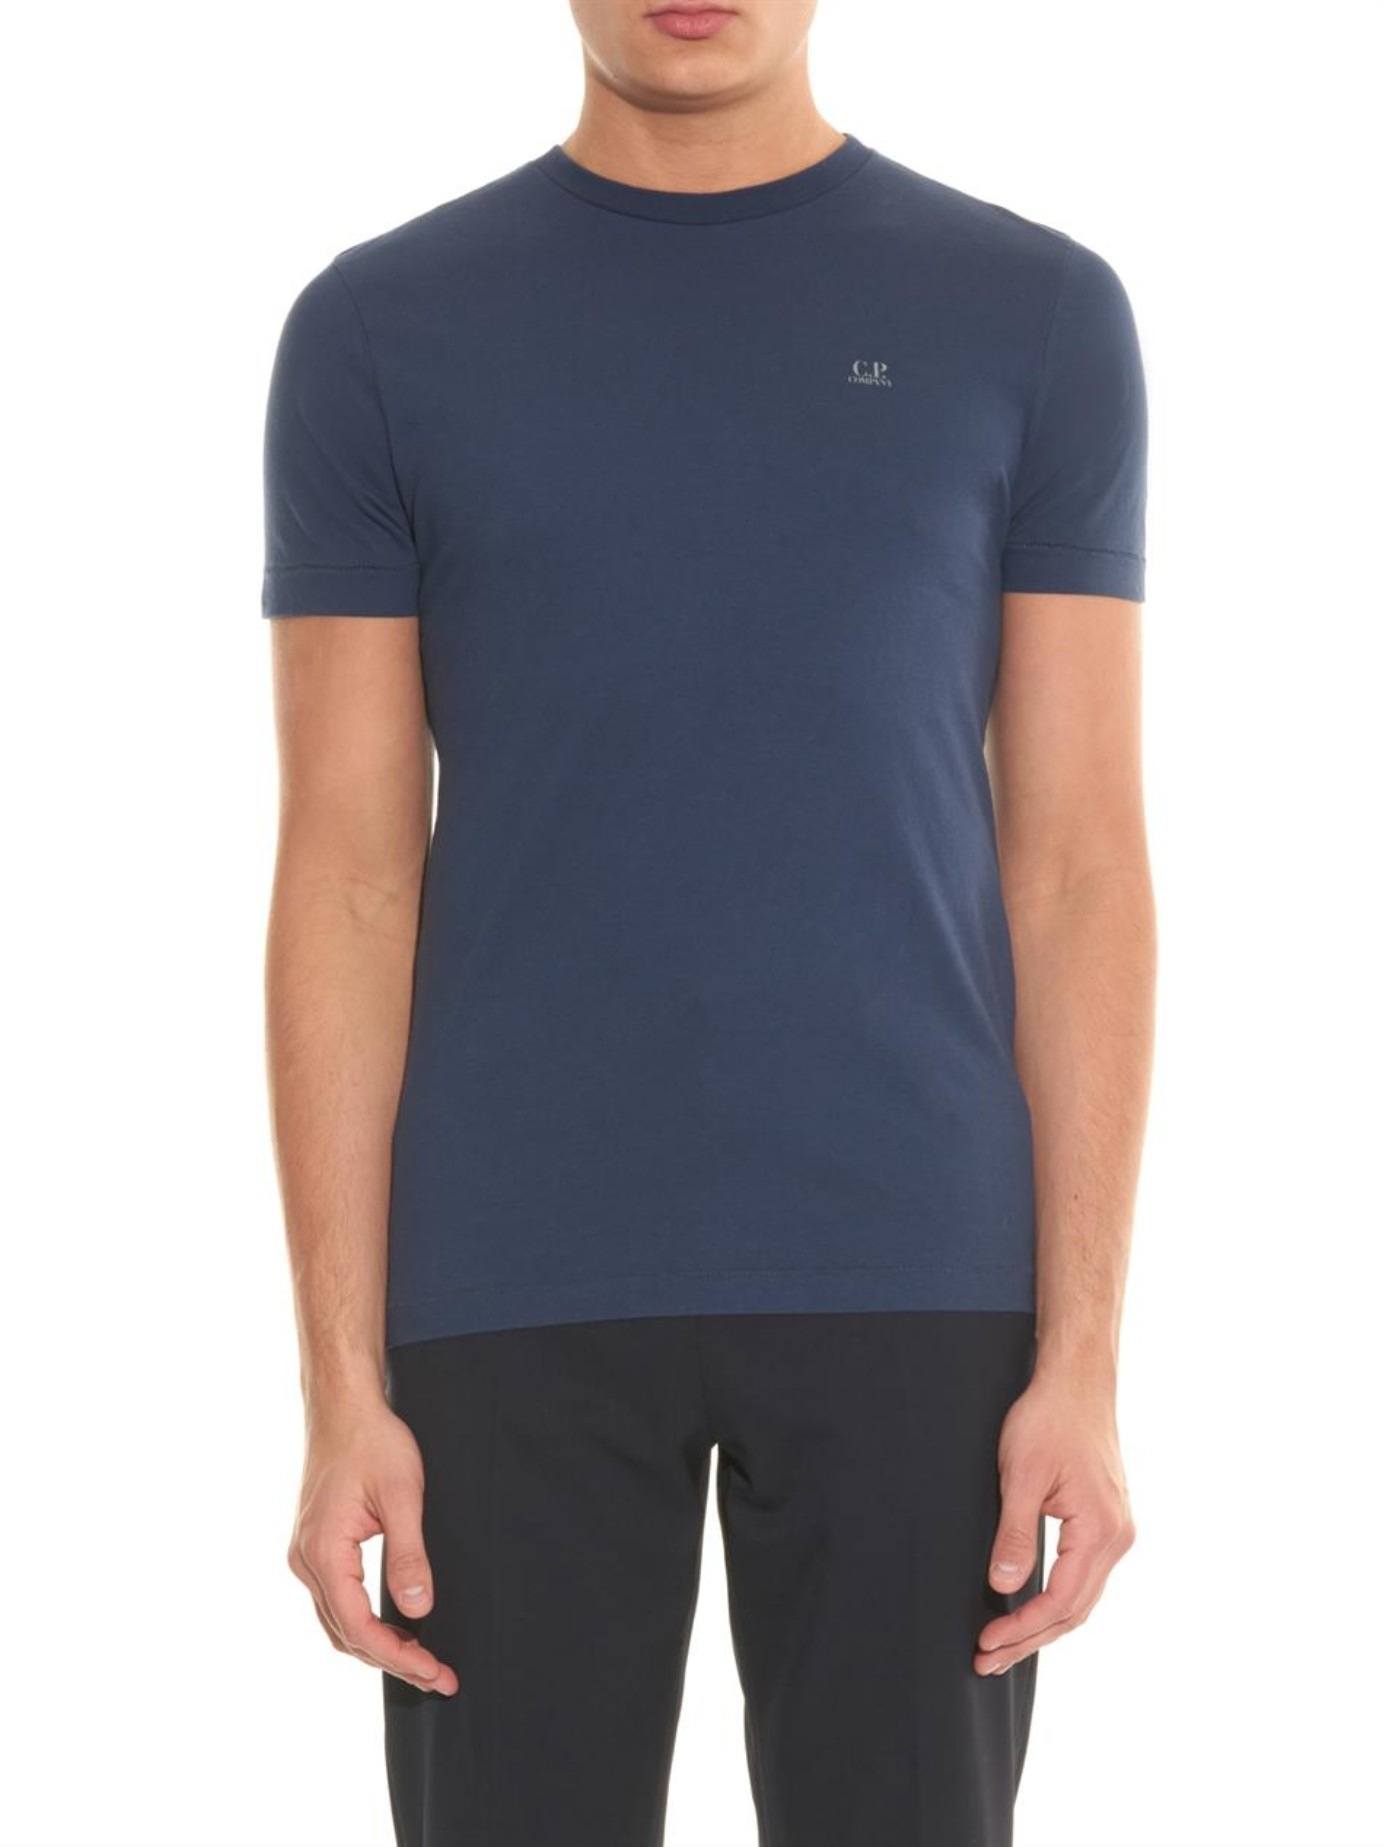 C p company goggle print cotton t shirt in blue for men lyst for Print company t shirts